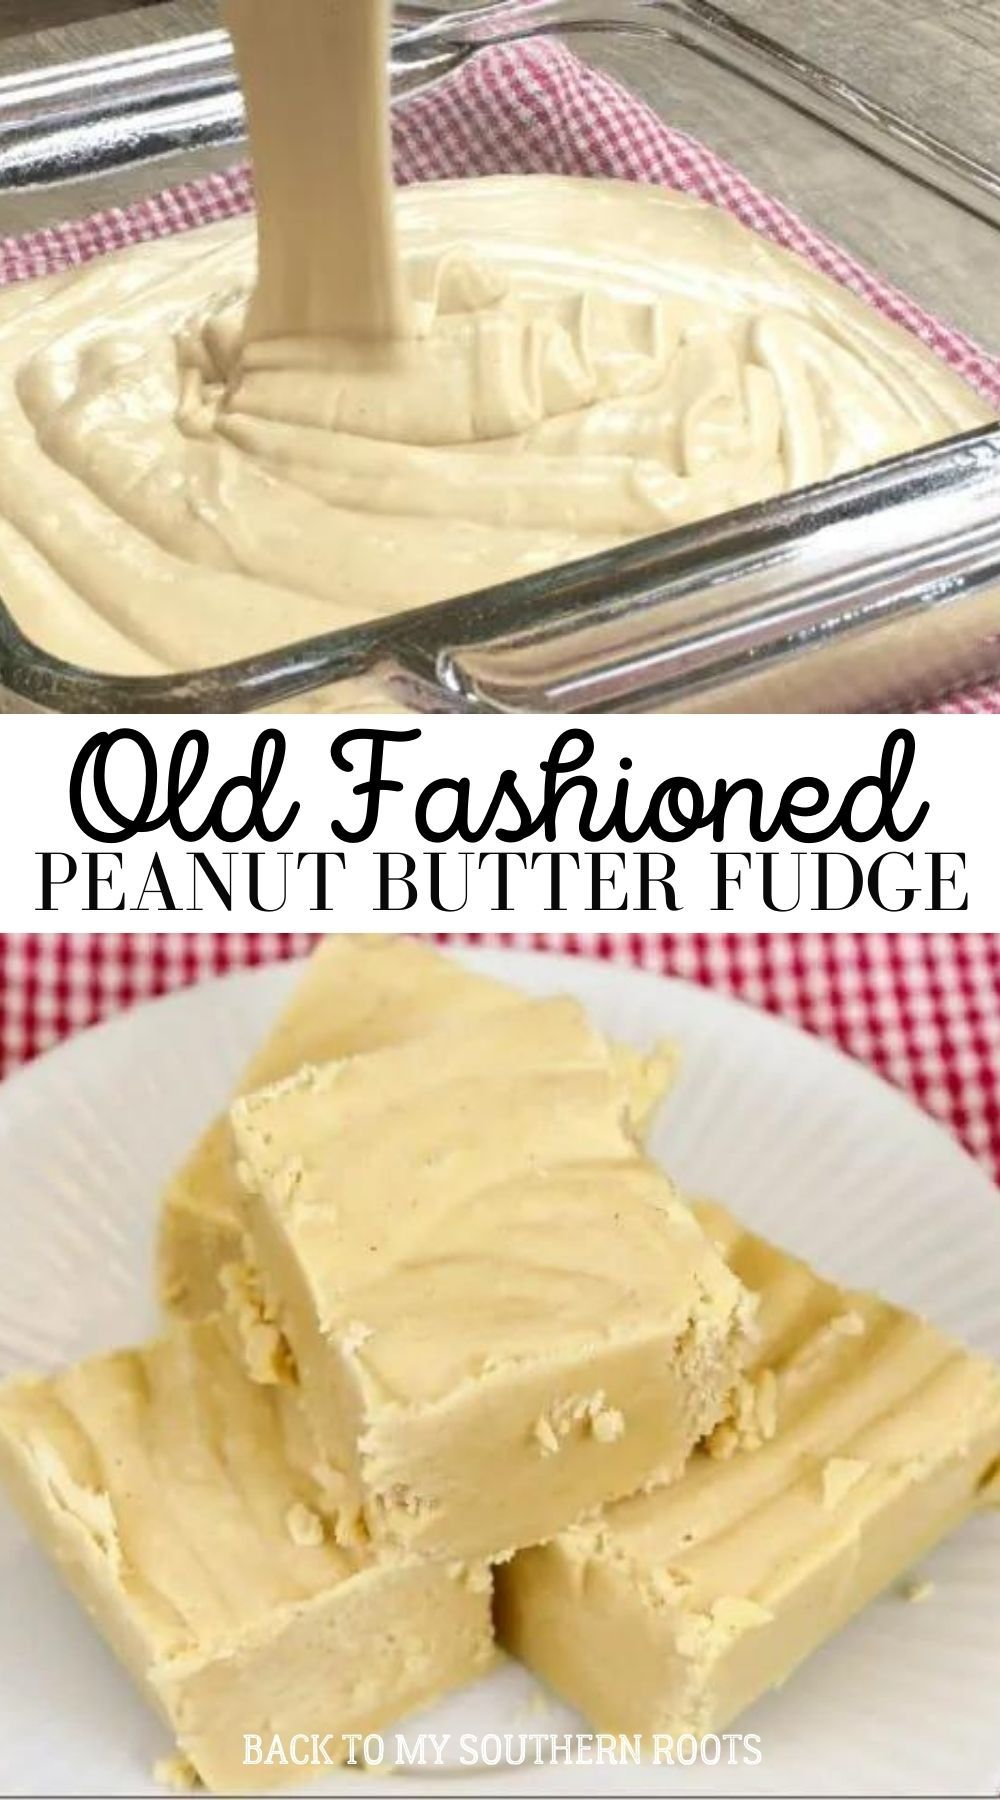 Old Fashioned Fudge Recipe With Peanut Butter Recipe In 2020 Fudge Recipes Peanut Butter Fudge Recipe Homemade Fudge